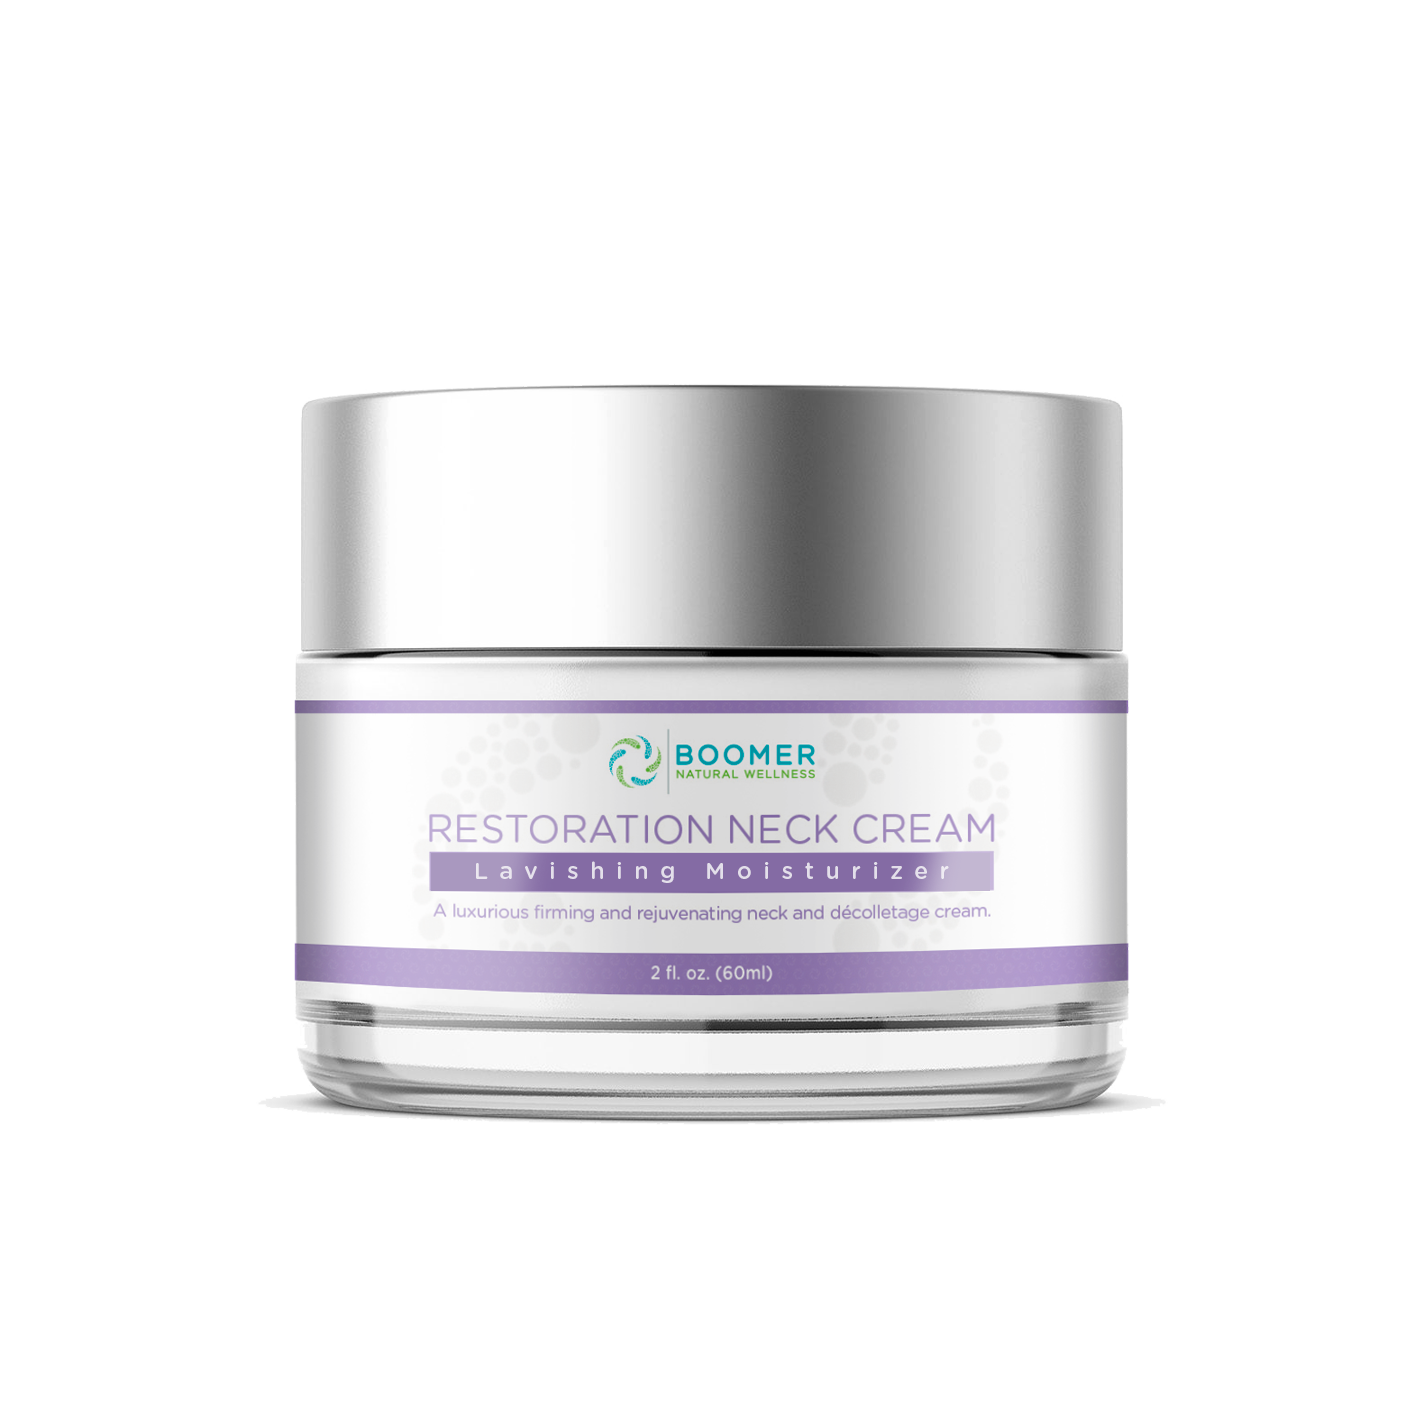 Restoration Neck Cream